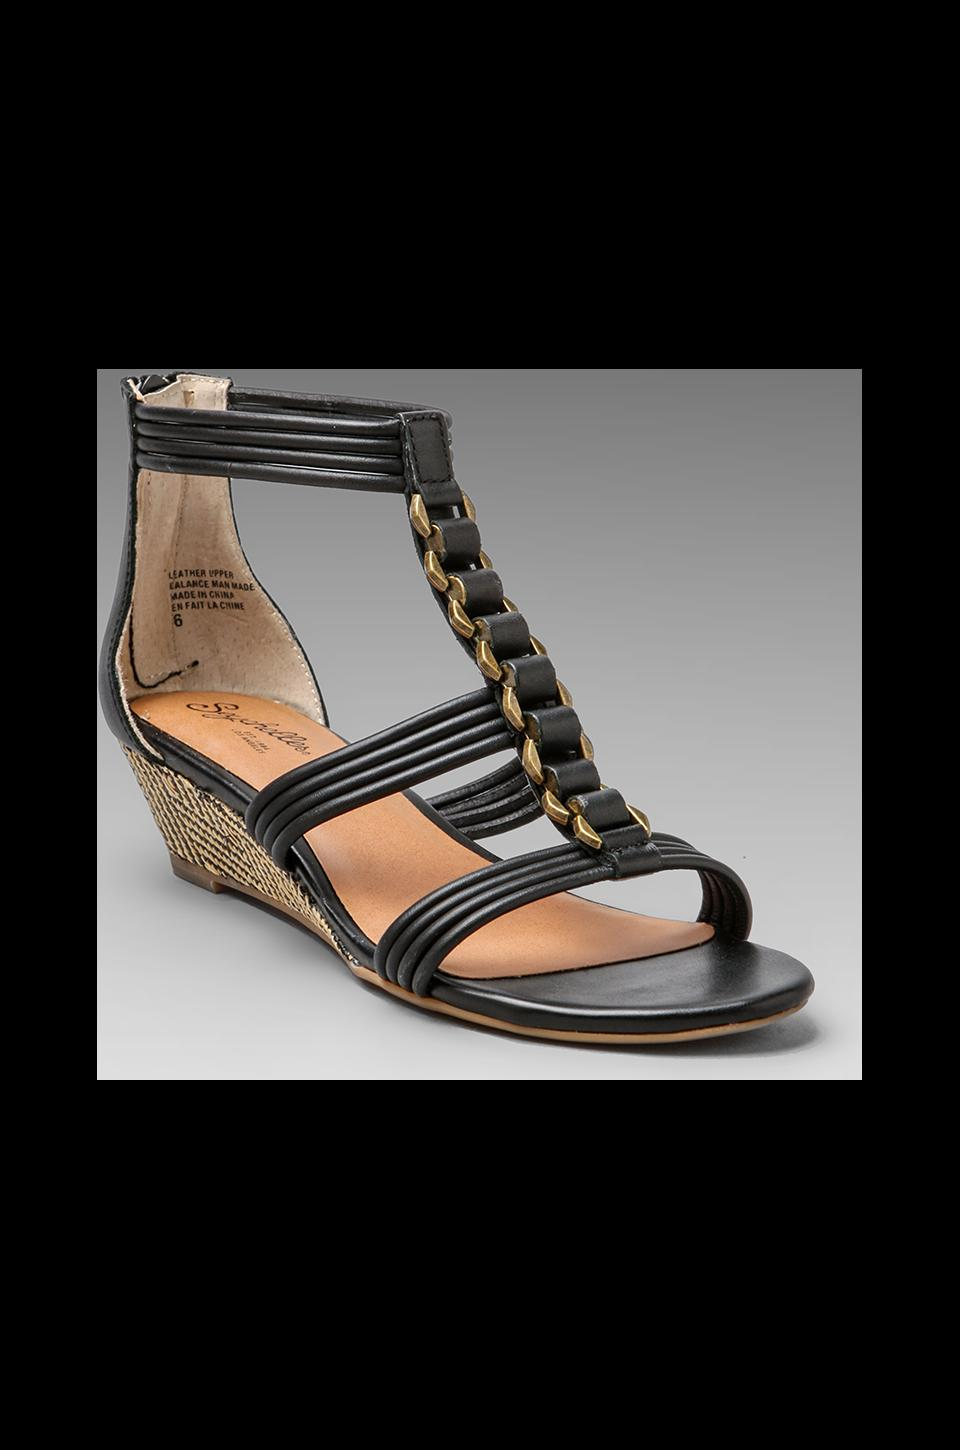 Seychelles Heart of the Matter Sandal in Black